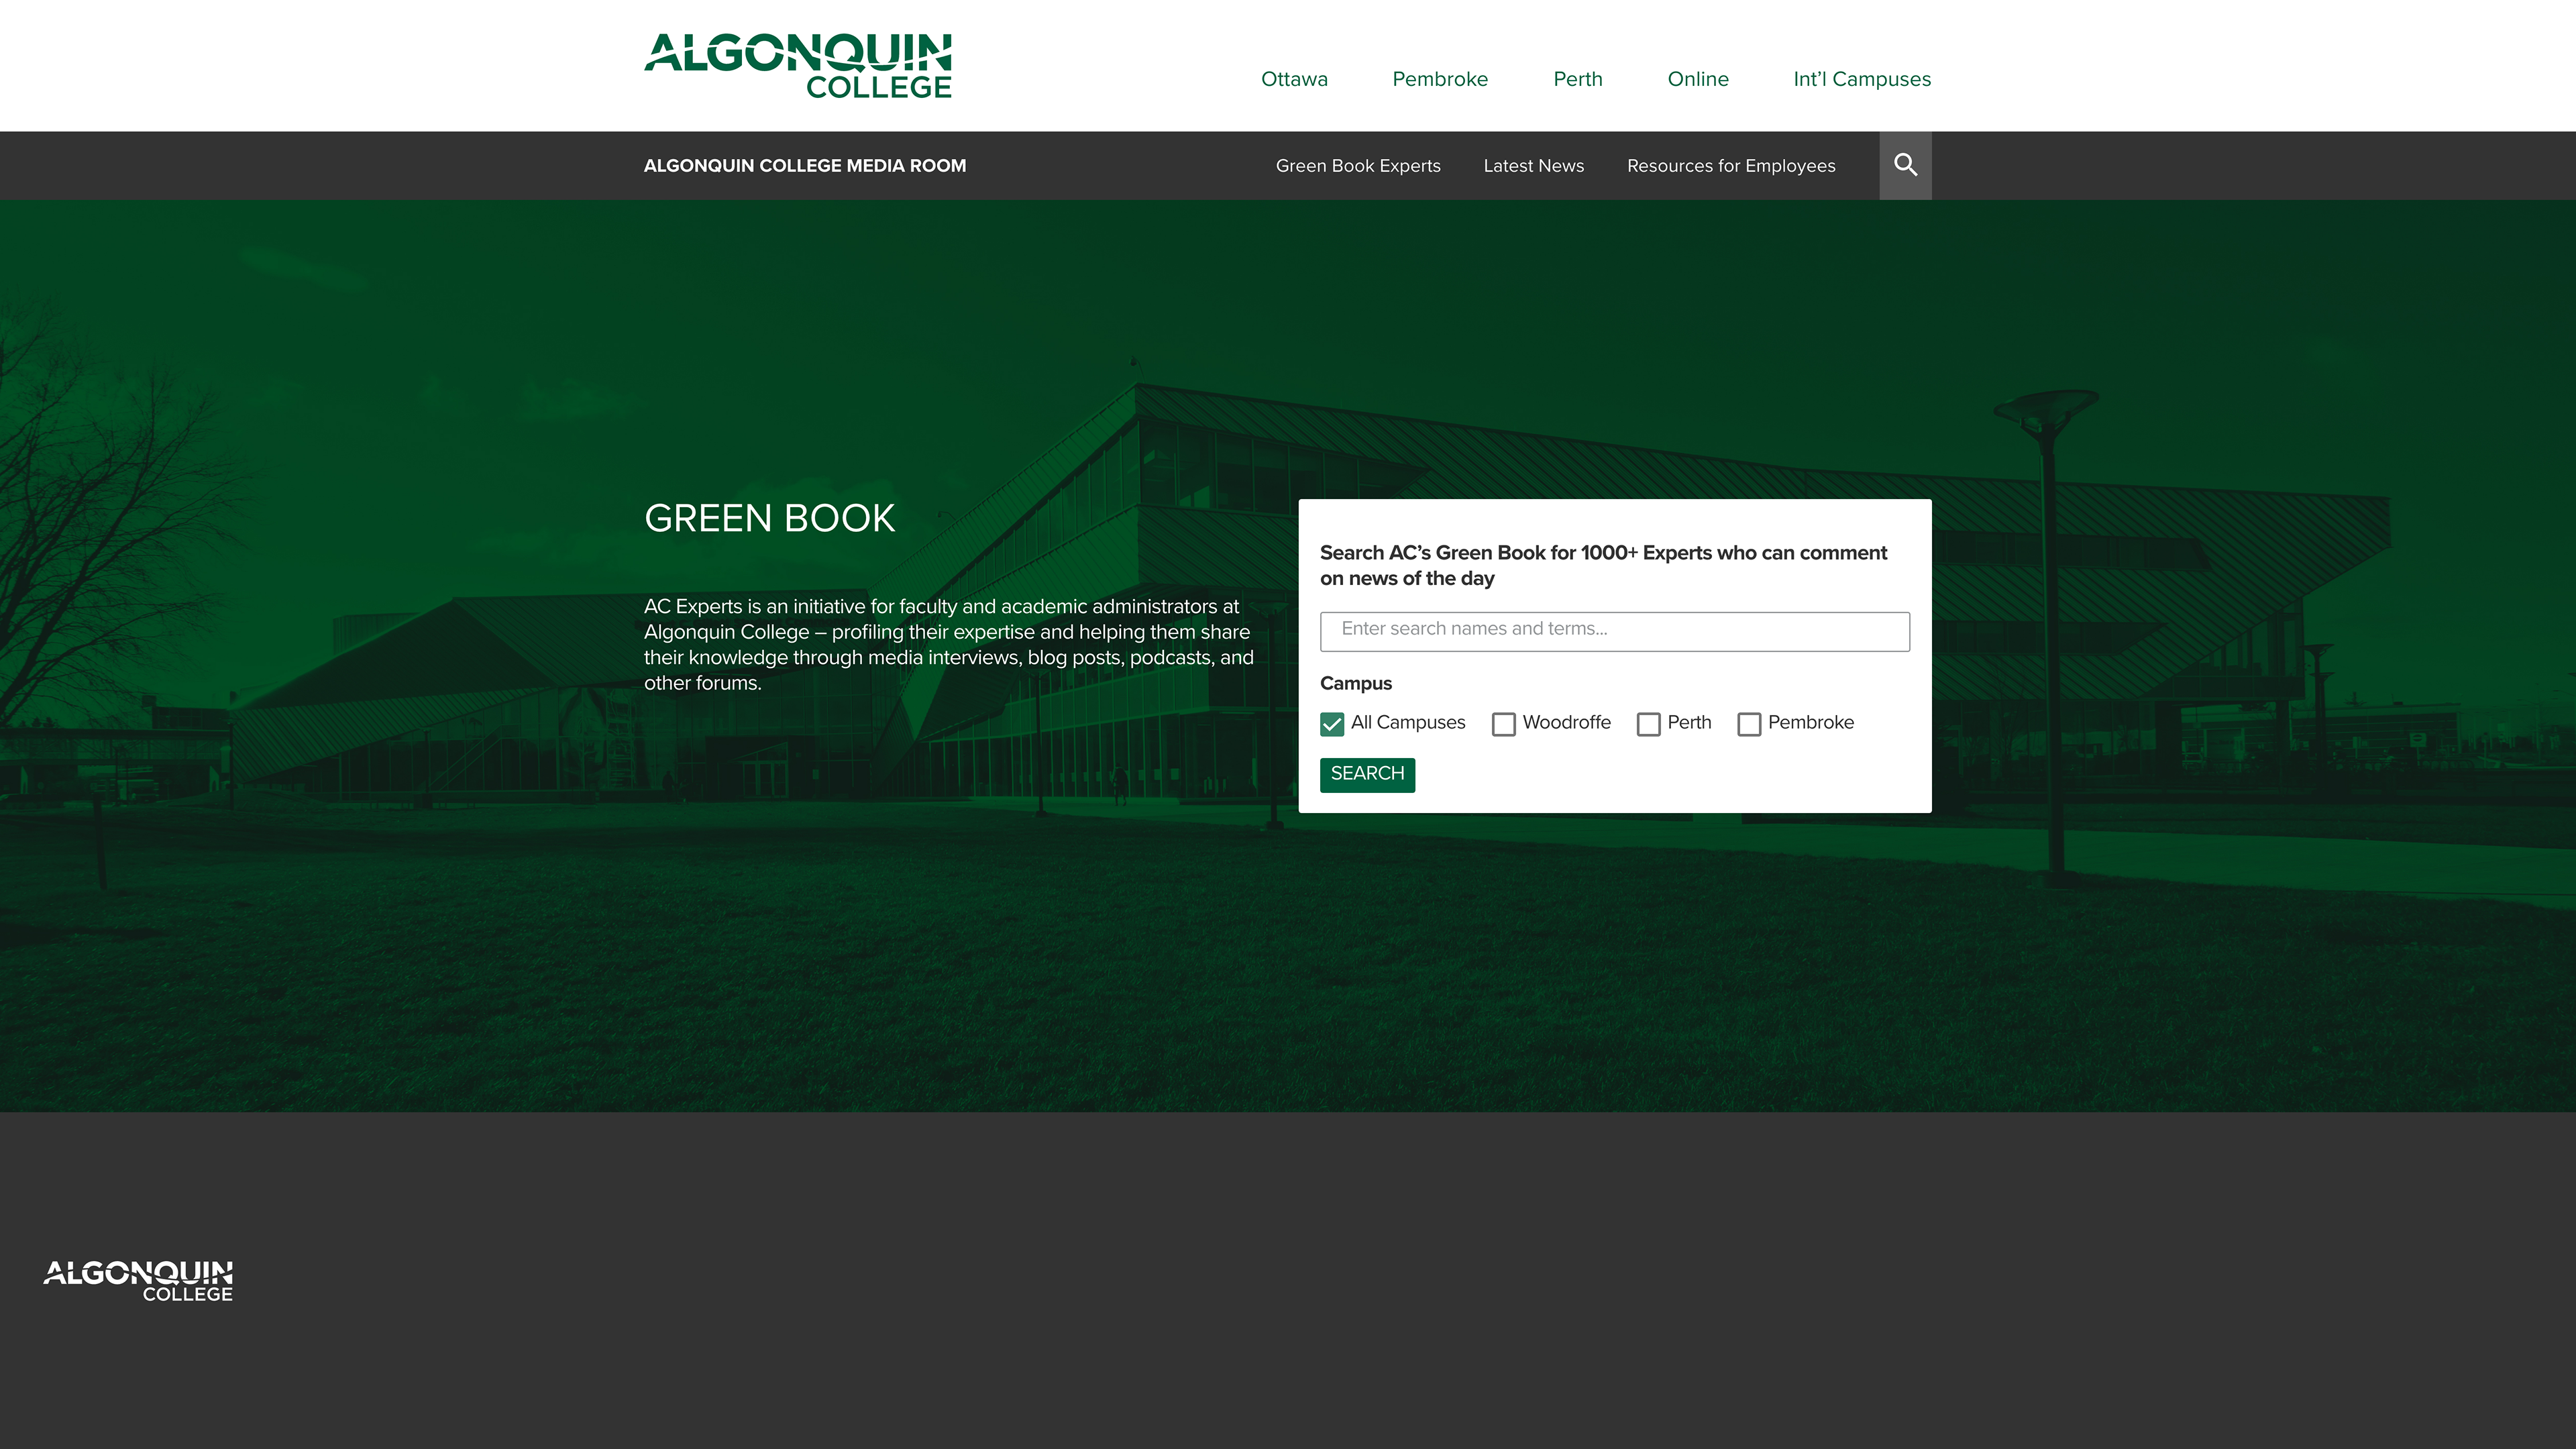 Directory search landing page of the Algonquin College Media Room Greenbook website